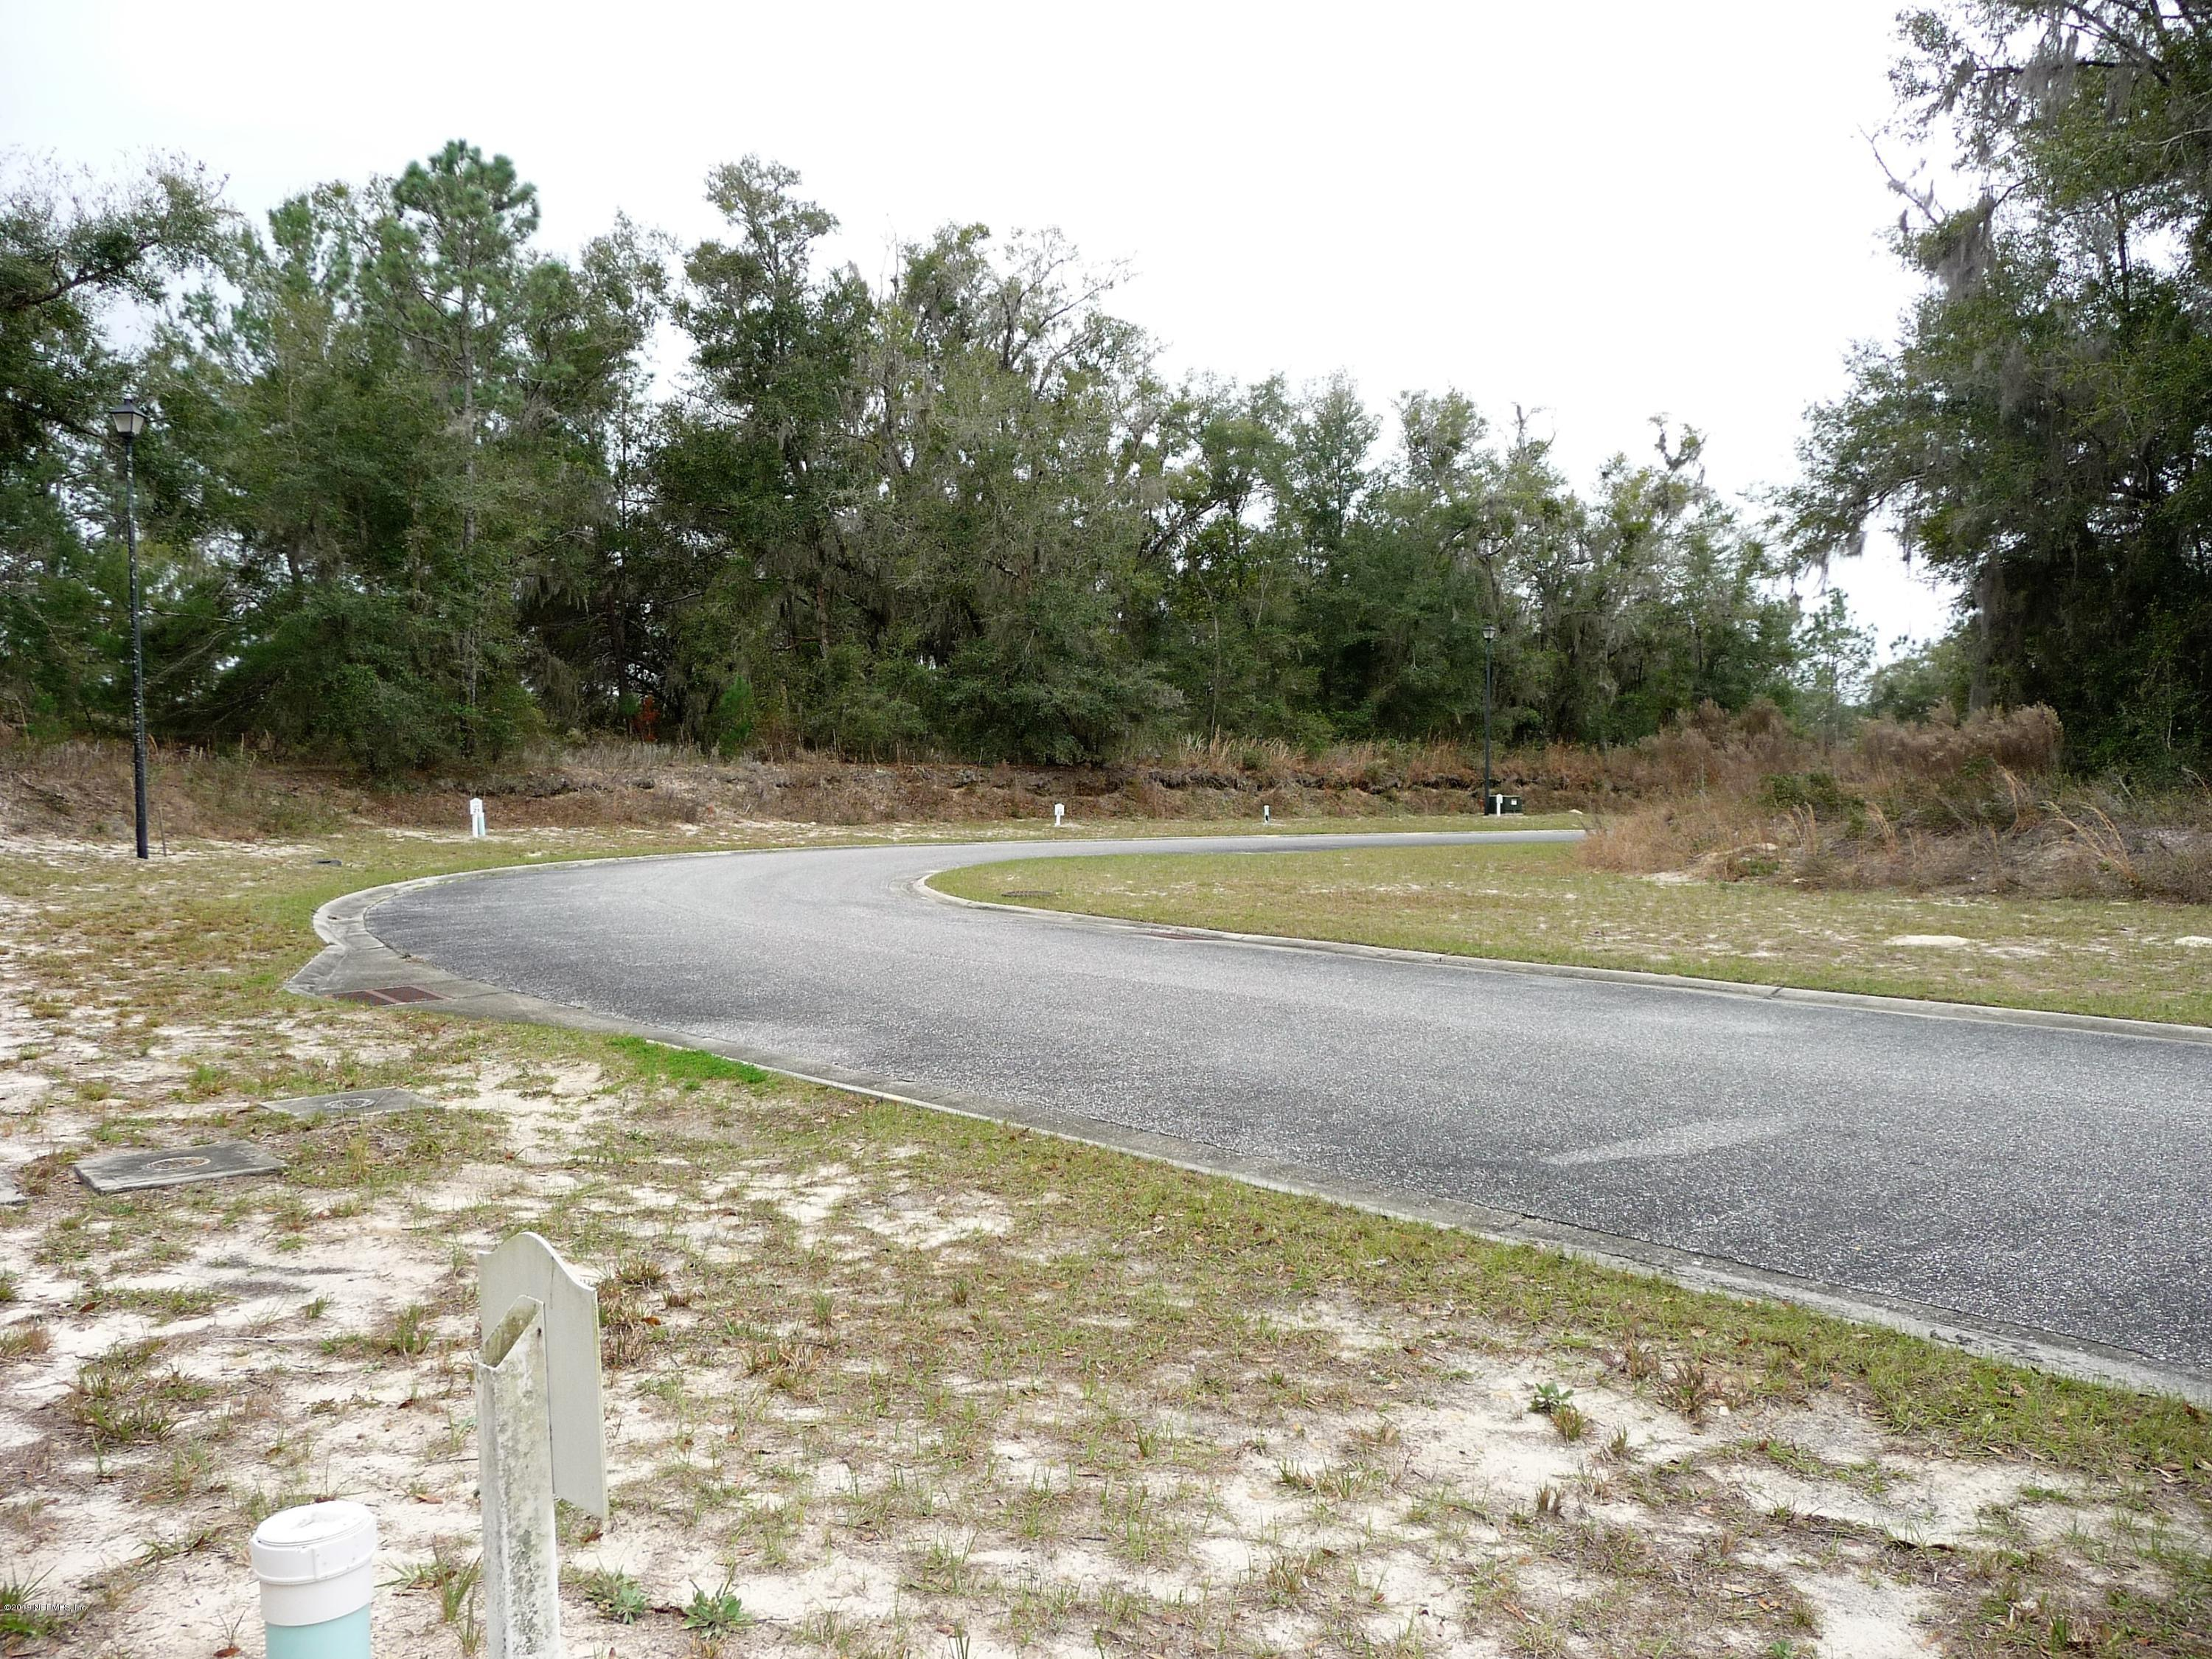 337 RIVER HILL, WELAKA, FLORIDA 32193, ,Vacant land,For sale,RIVER HILL,1059563